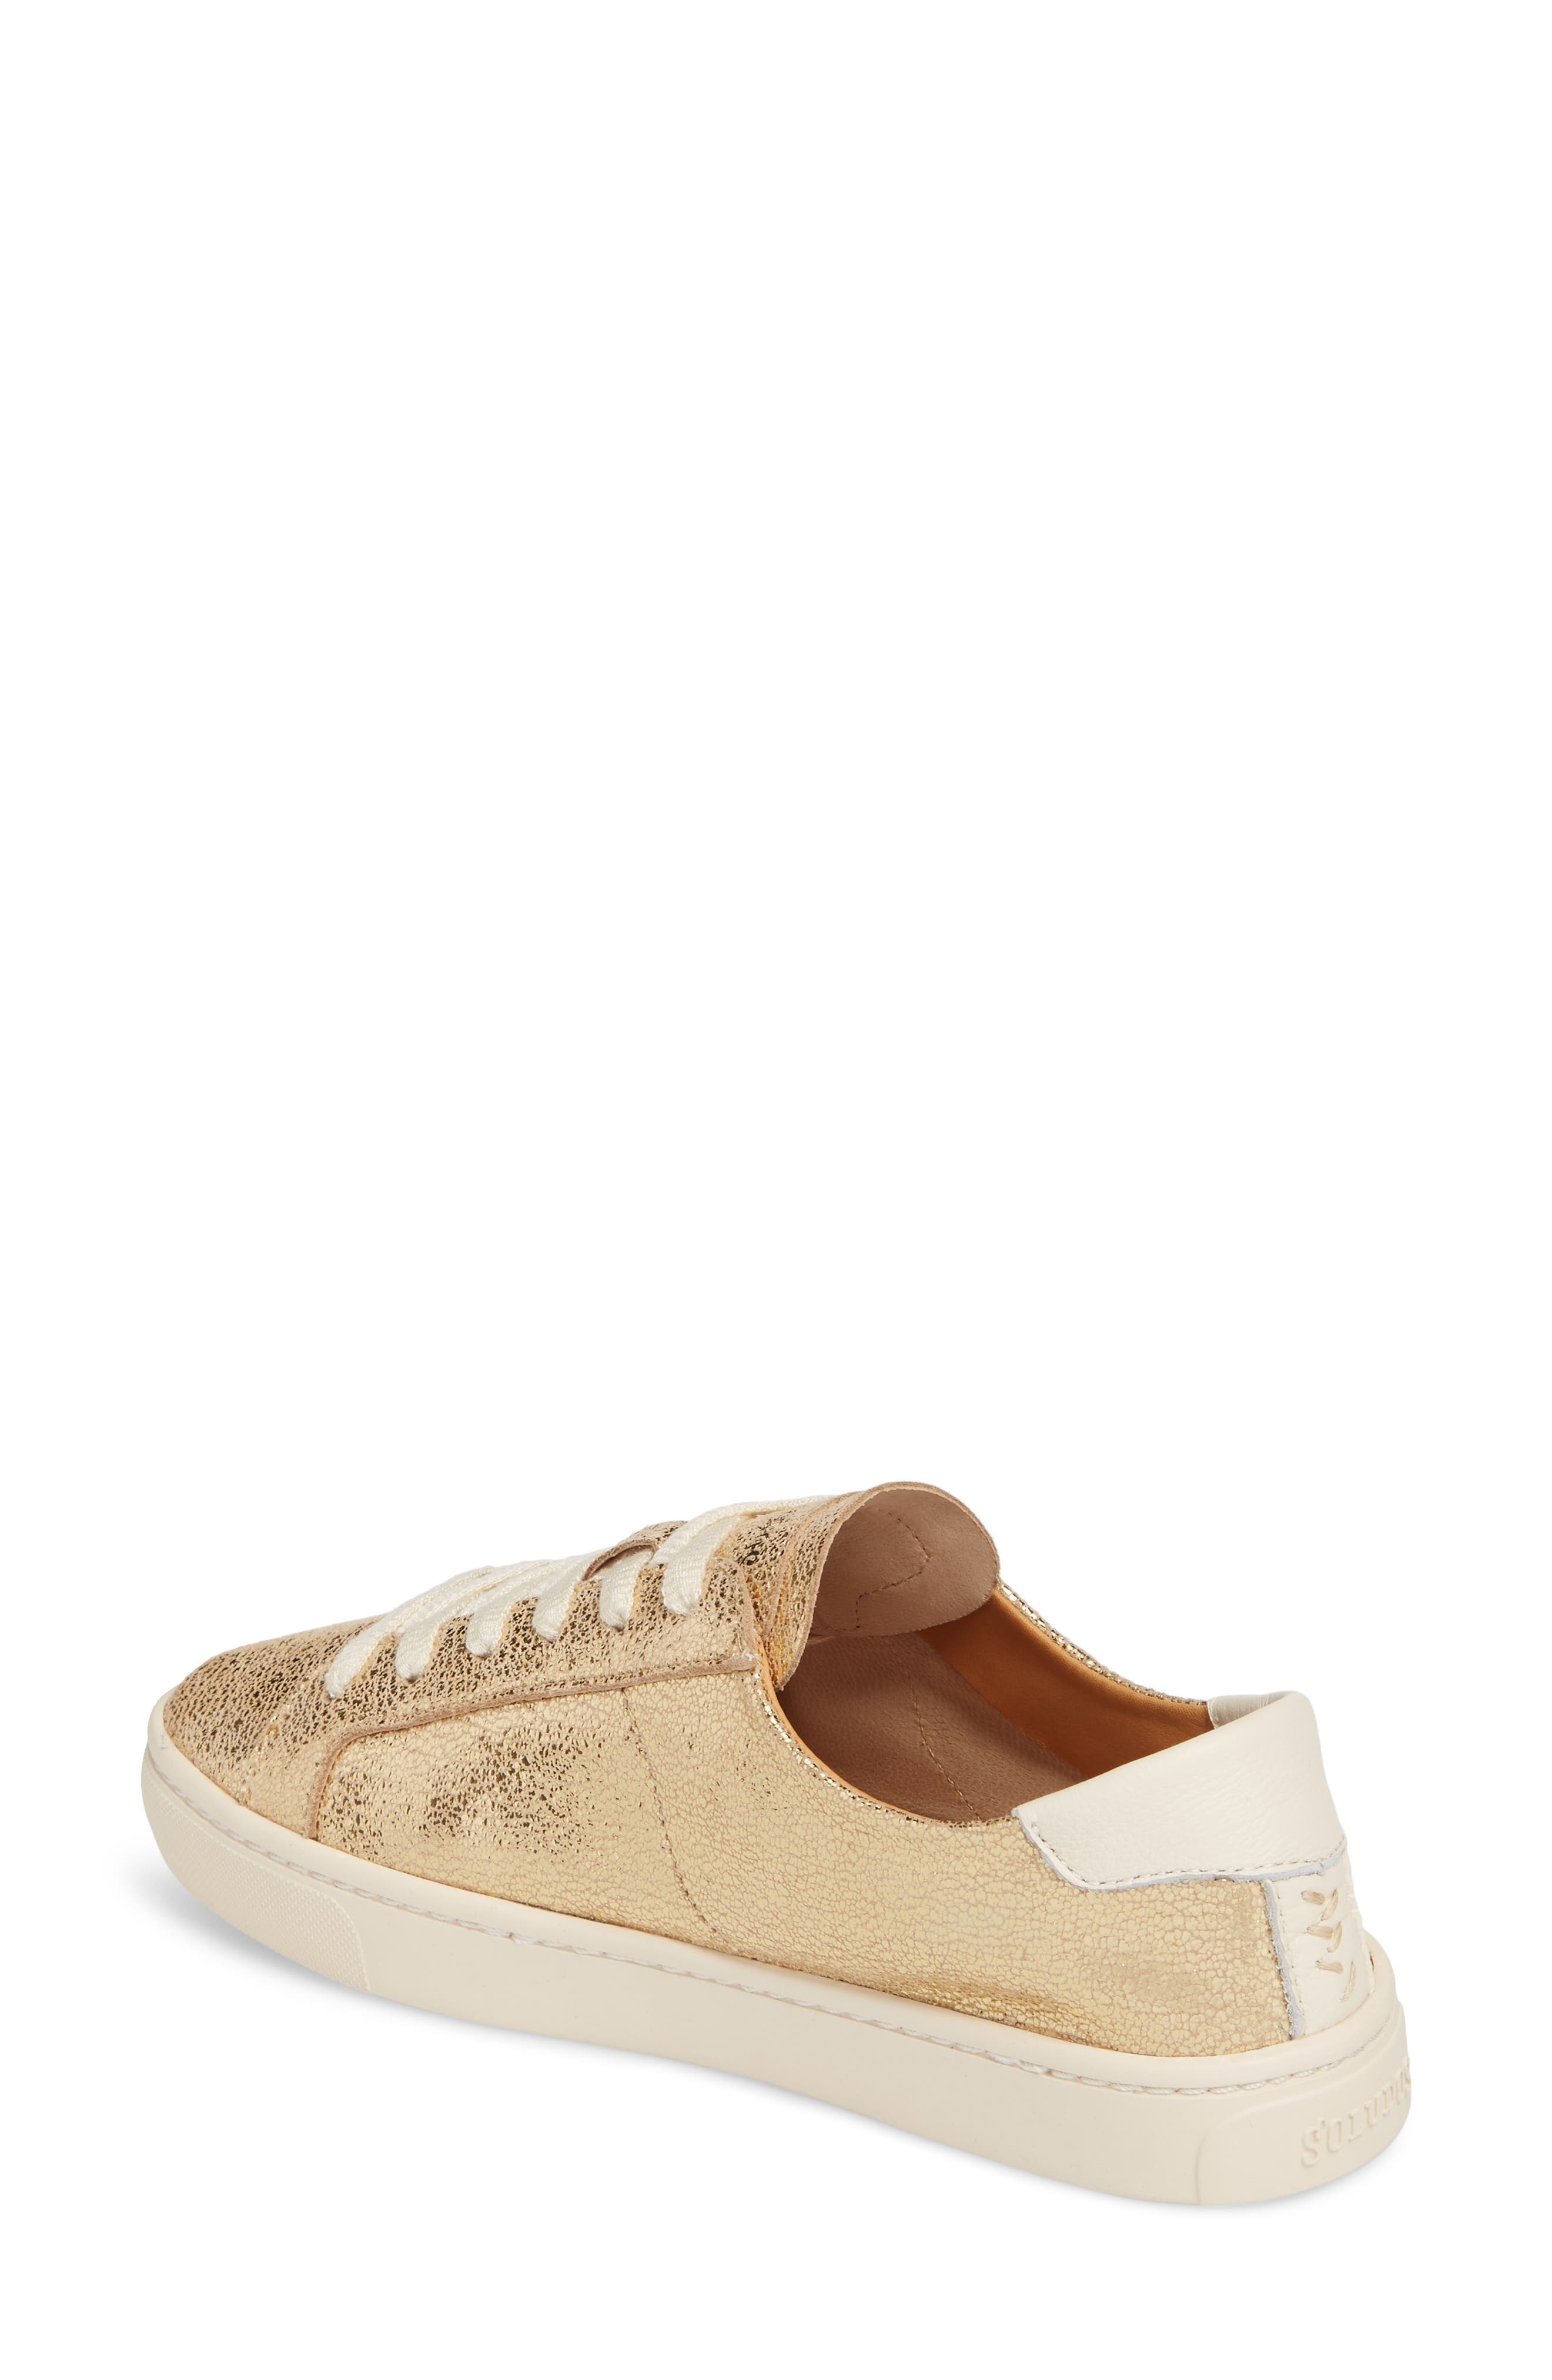 Ibiza Metallic Lace-Up Sneaker,                             Alternate thumbnail 2, color,                             Pale Gold Leather